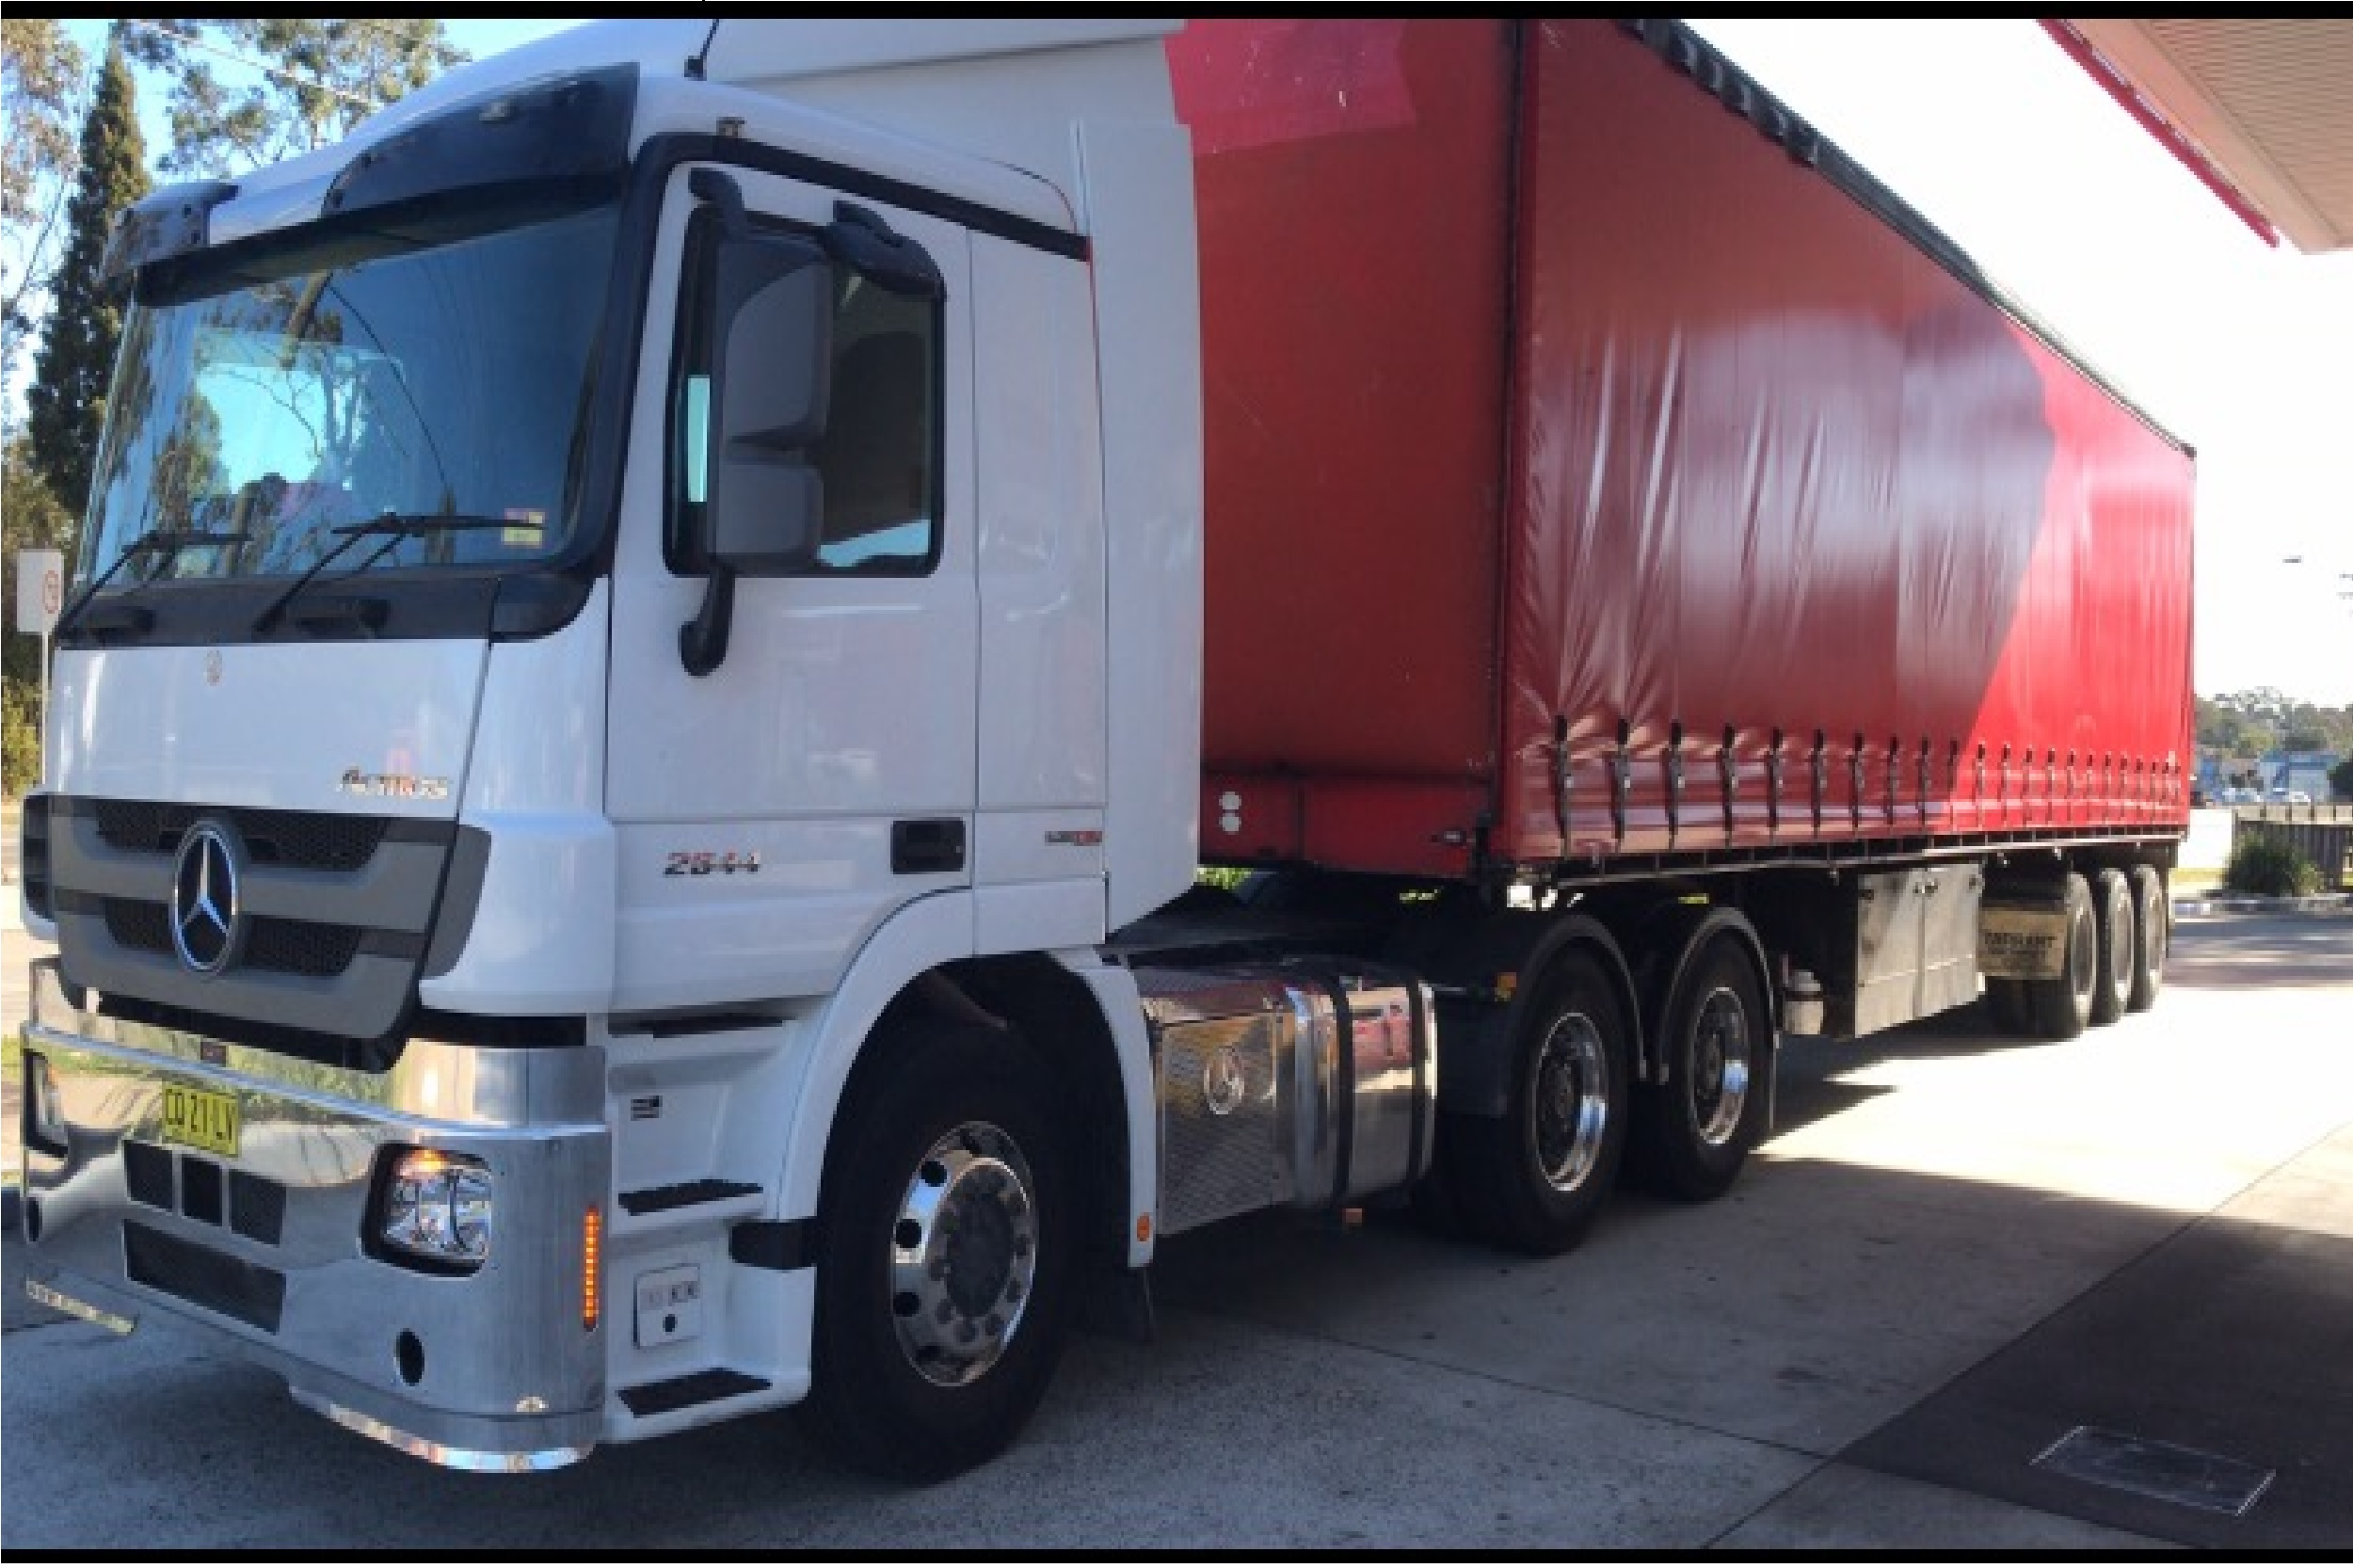 Medium size Transport Logistic Company For Sale in Sydney in New South Wales